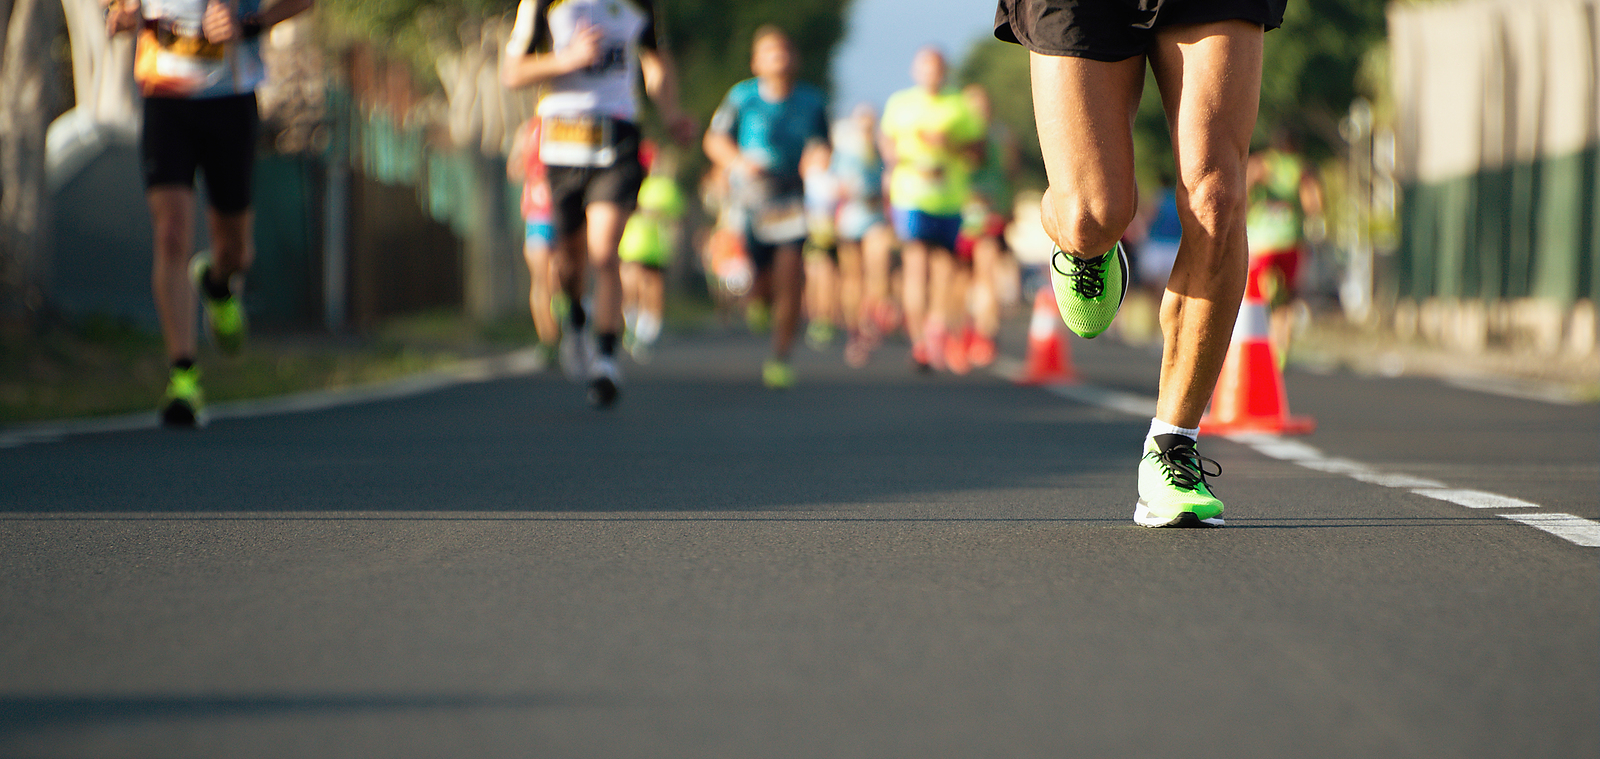 bigstock-Marathon-Running-Race-People--240360793.jpg